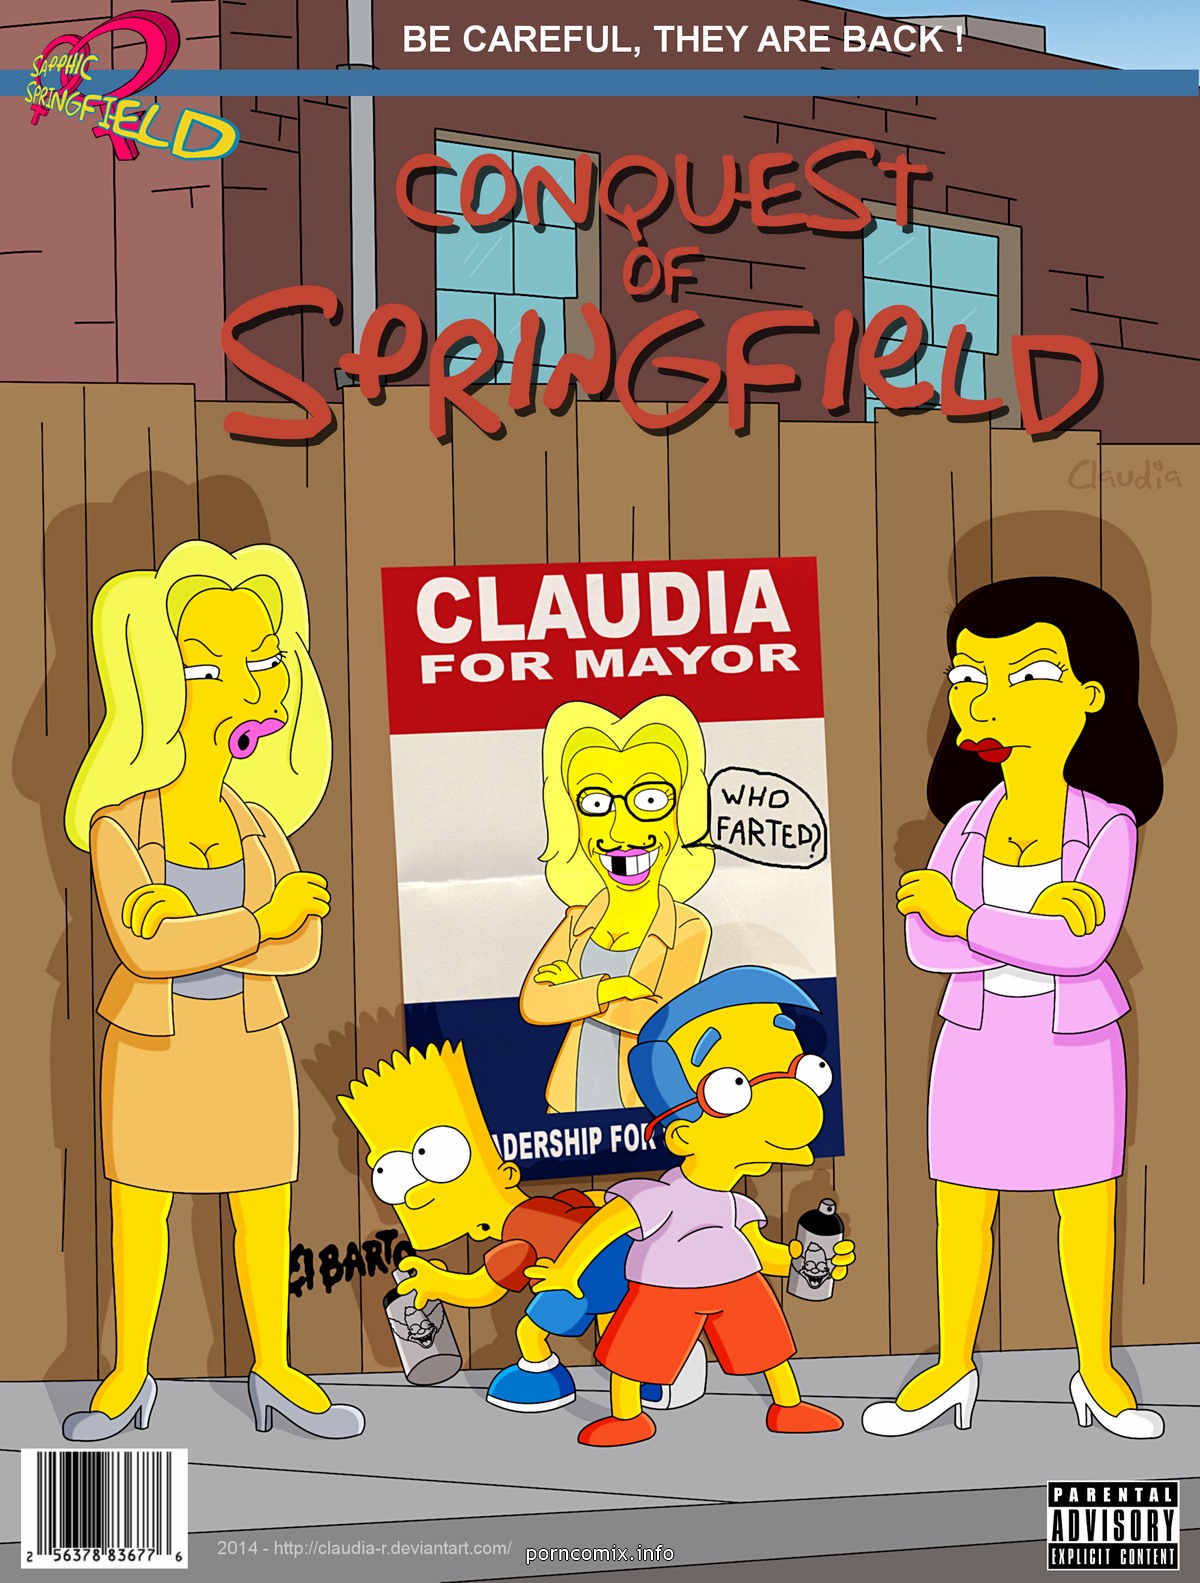 Porn Comics - The Simpsons -Conquest of Springfield porn comics 8 muses